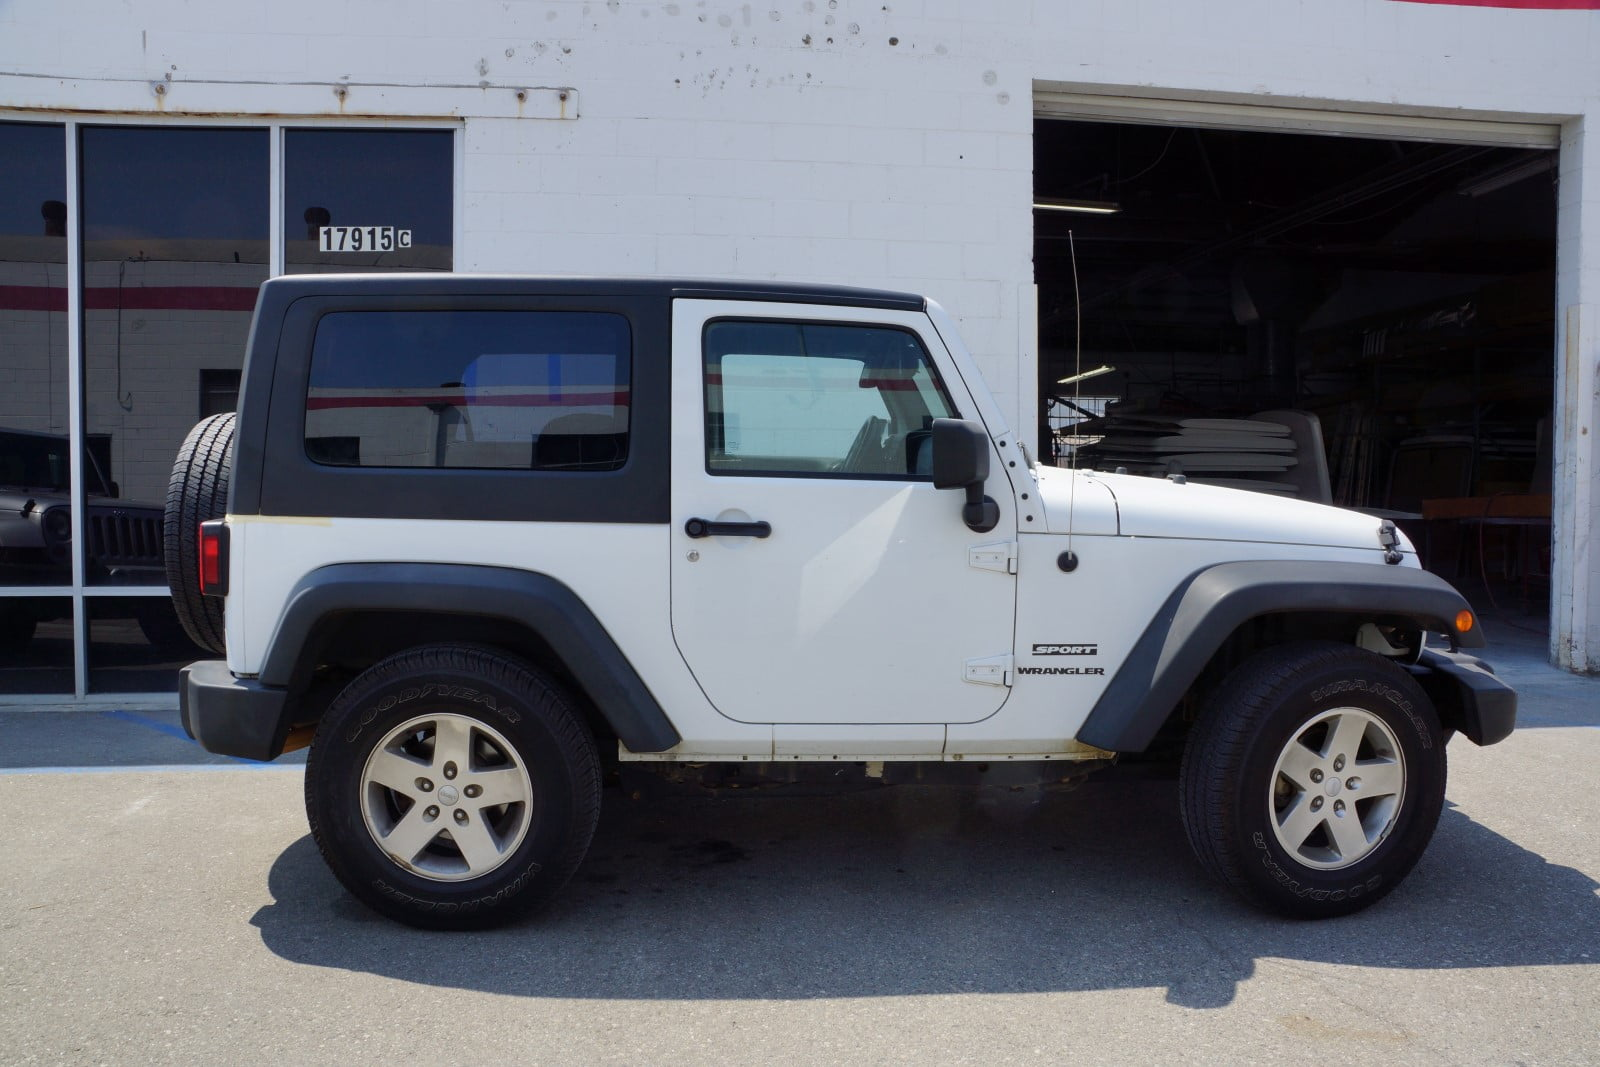 Hardtop Depot Quality Hardtop For Jeep Wrangler Jk 2 Door